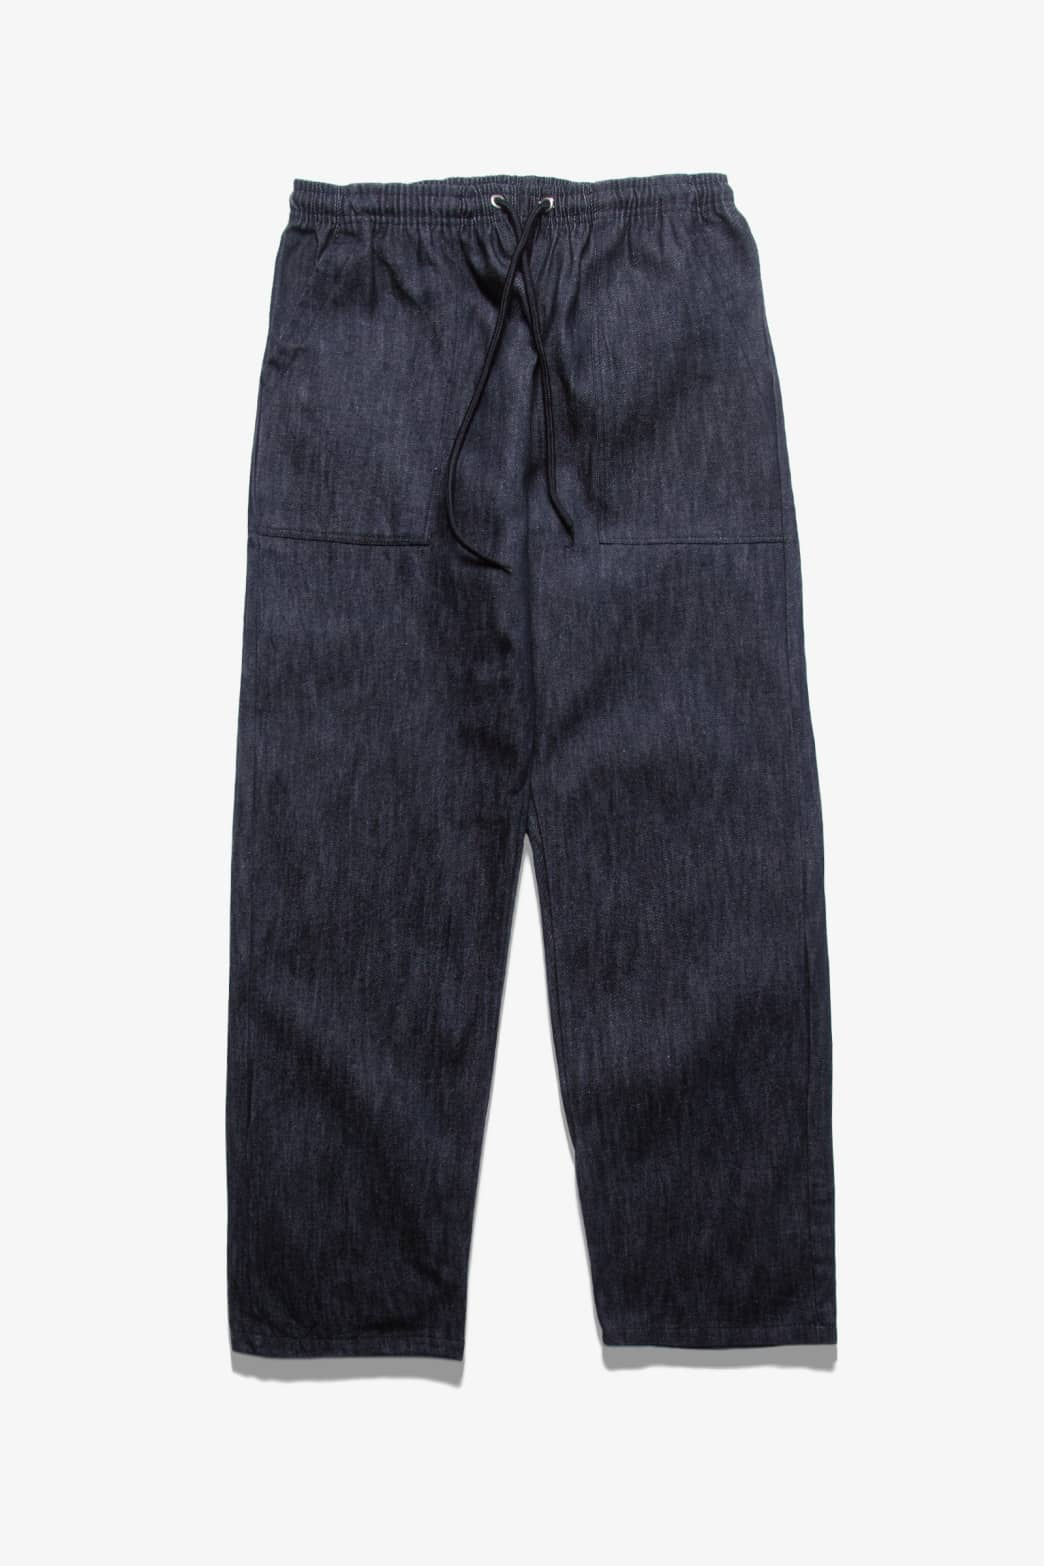 Service Works - Classic Chef Pants - Indigo Denim   Trousers by Service Works 6